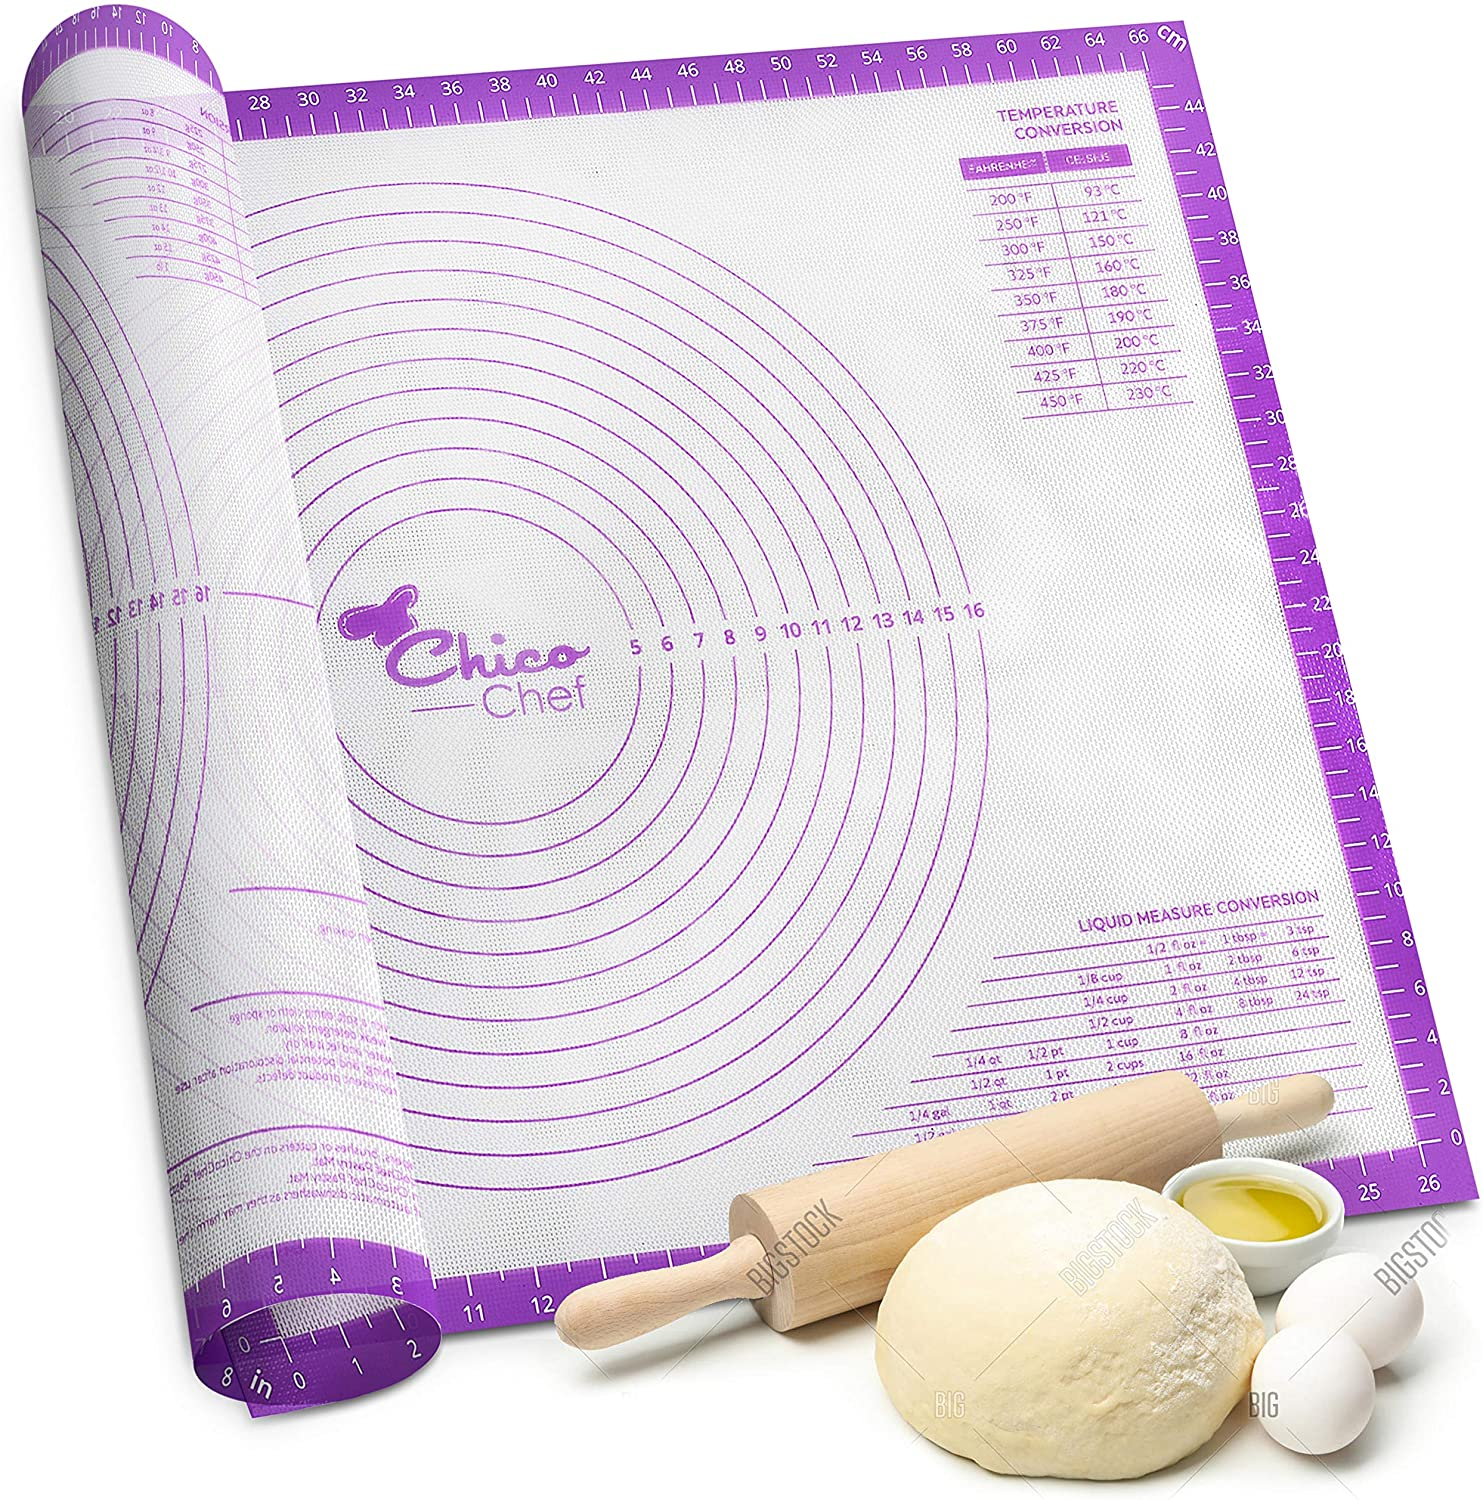 Silicone Pastry Large discharge sale Mat for Rolling Dough Extra wit Non Super special price Stick Large